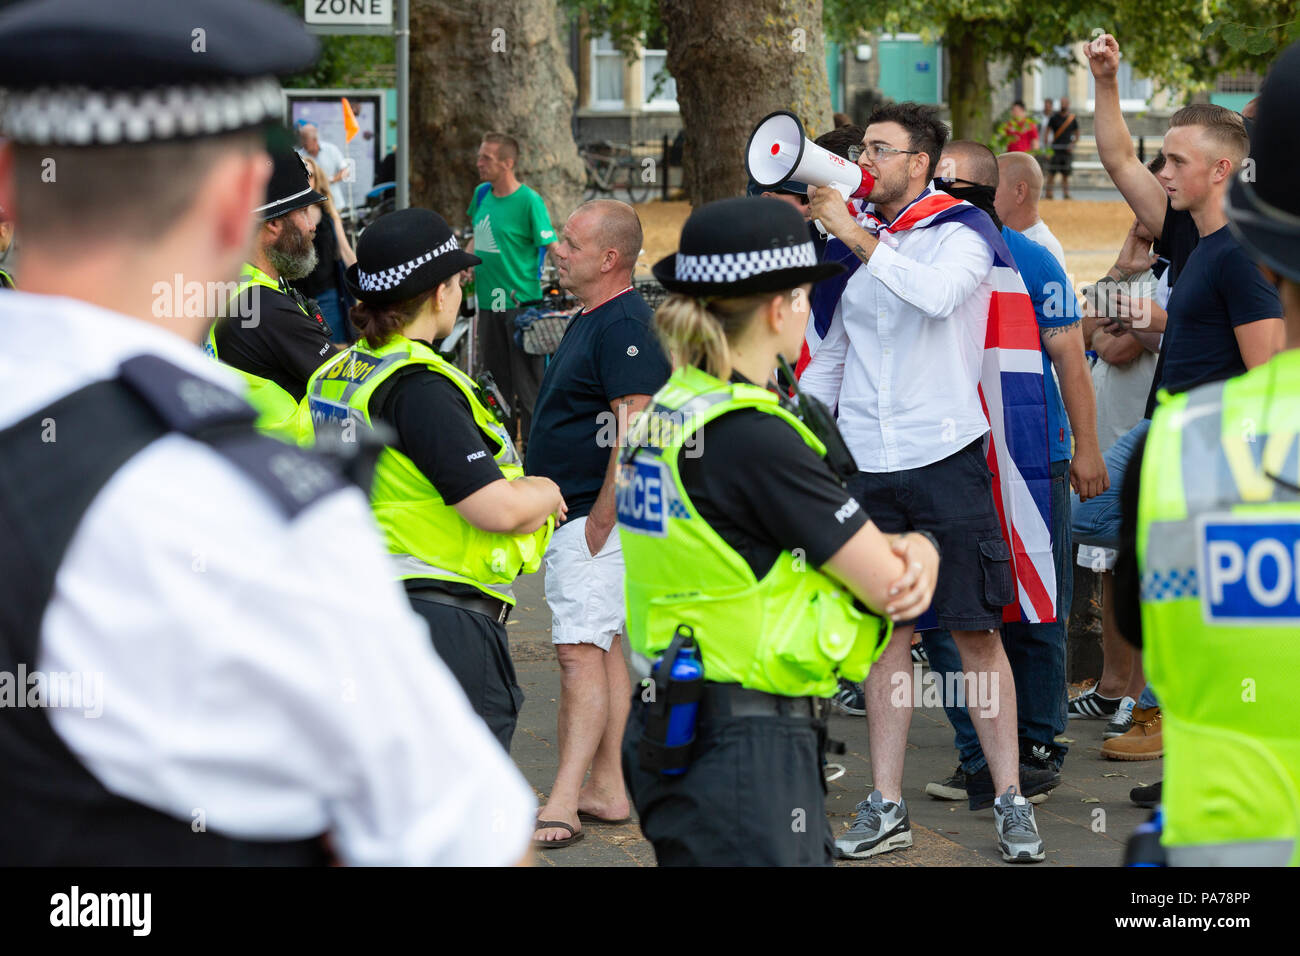 Cambridge, UK. 21st July 2018. 'Free Tommy Robinson' protest in support of former EDL leader Tommy Robinson and counter protest by Cambridge's 'Stand up to Racism' group near Mill Road and Parker's Piece. CamNews / Alamy Live News - Stock Image